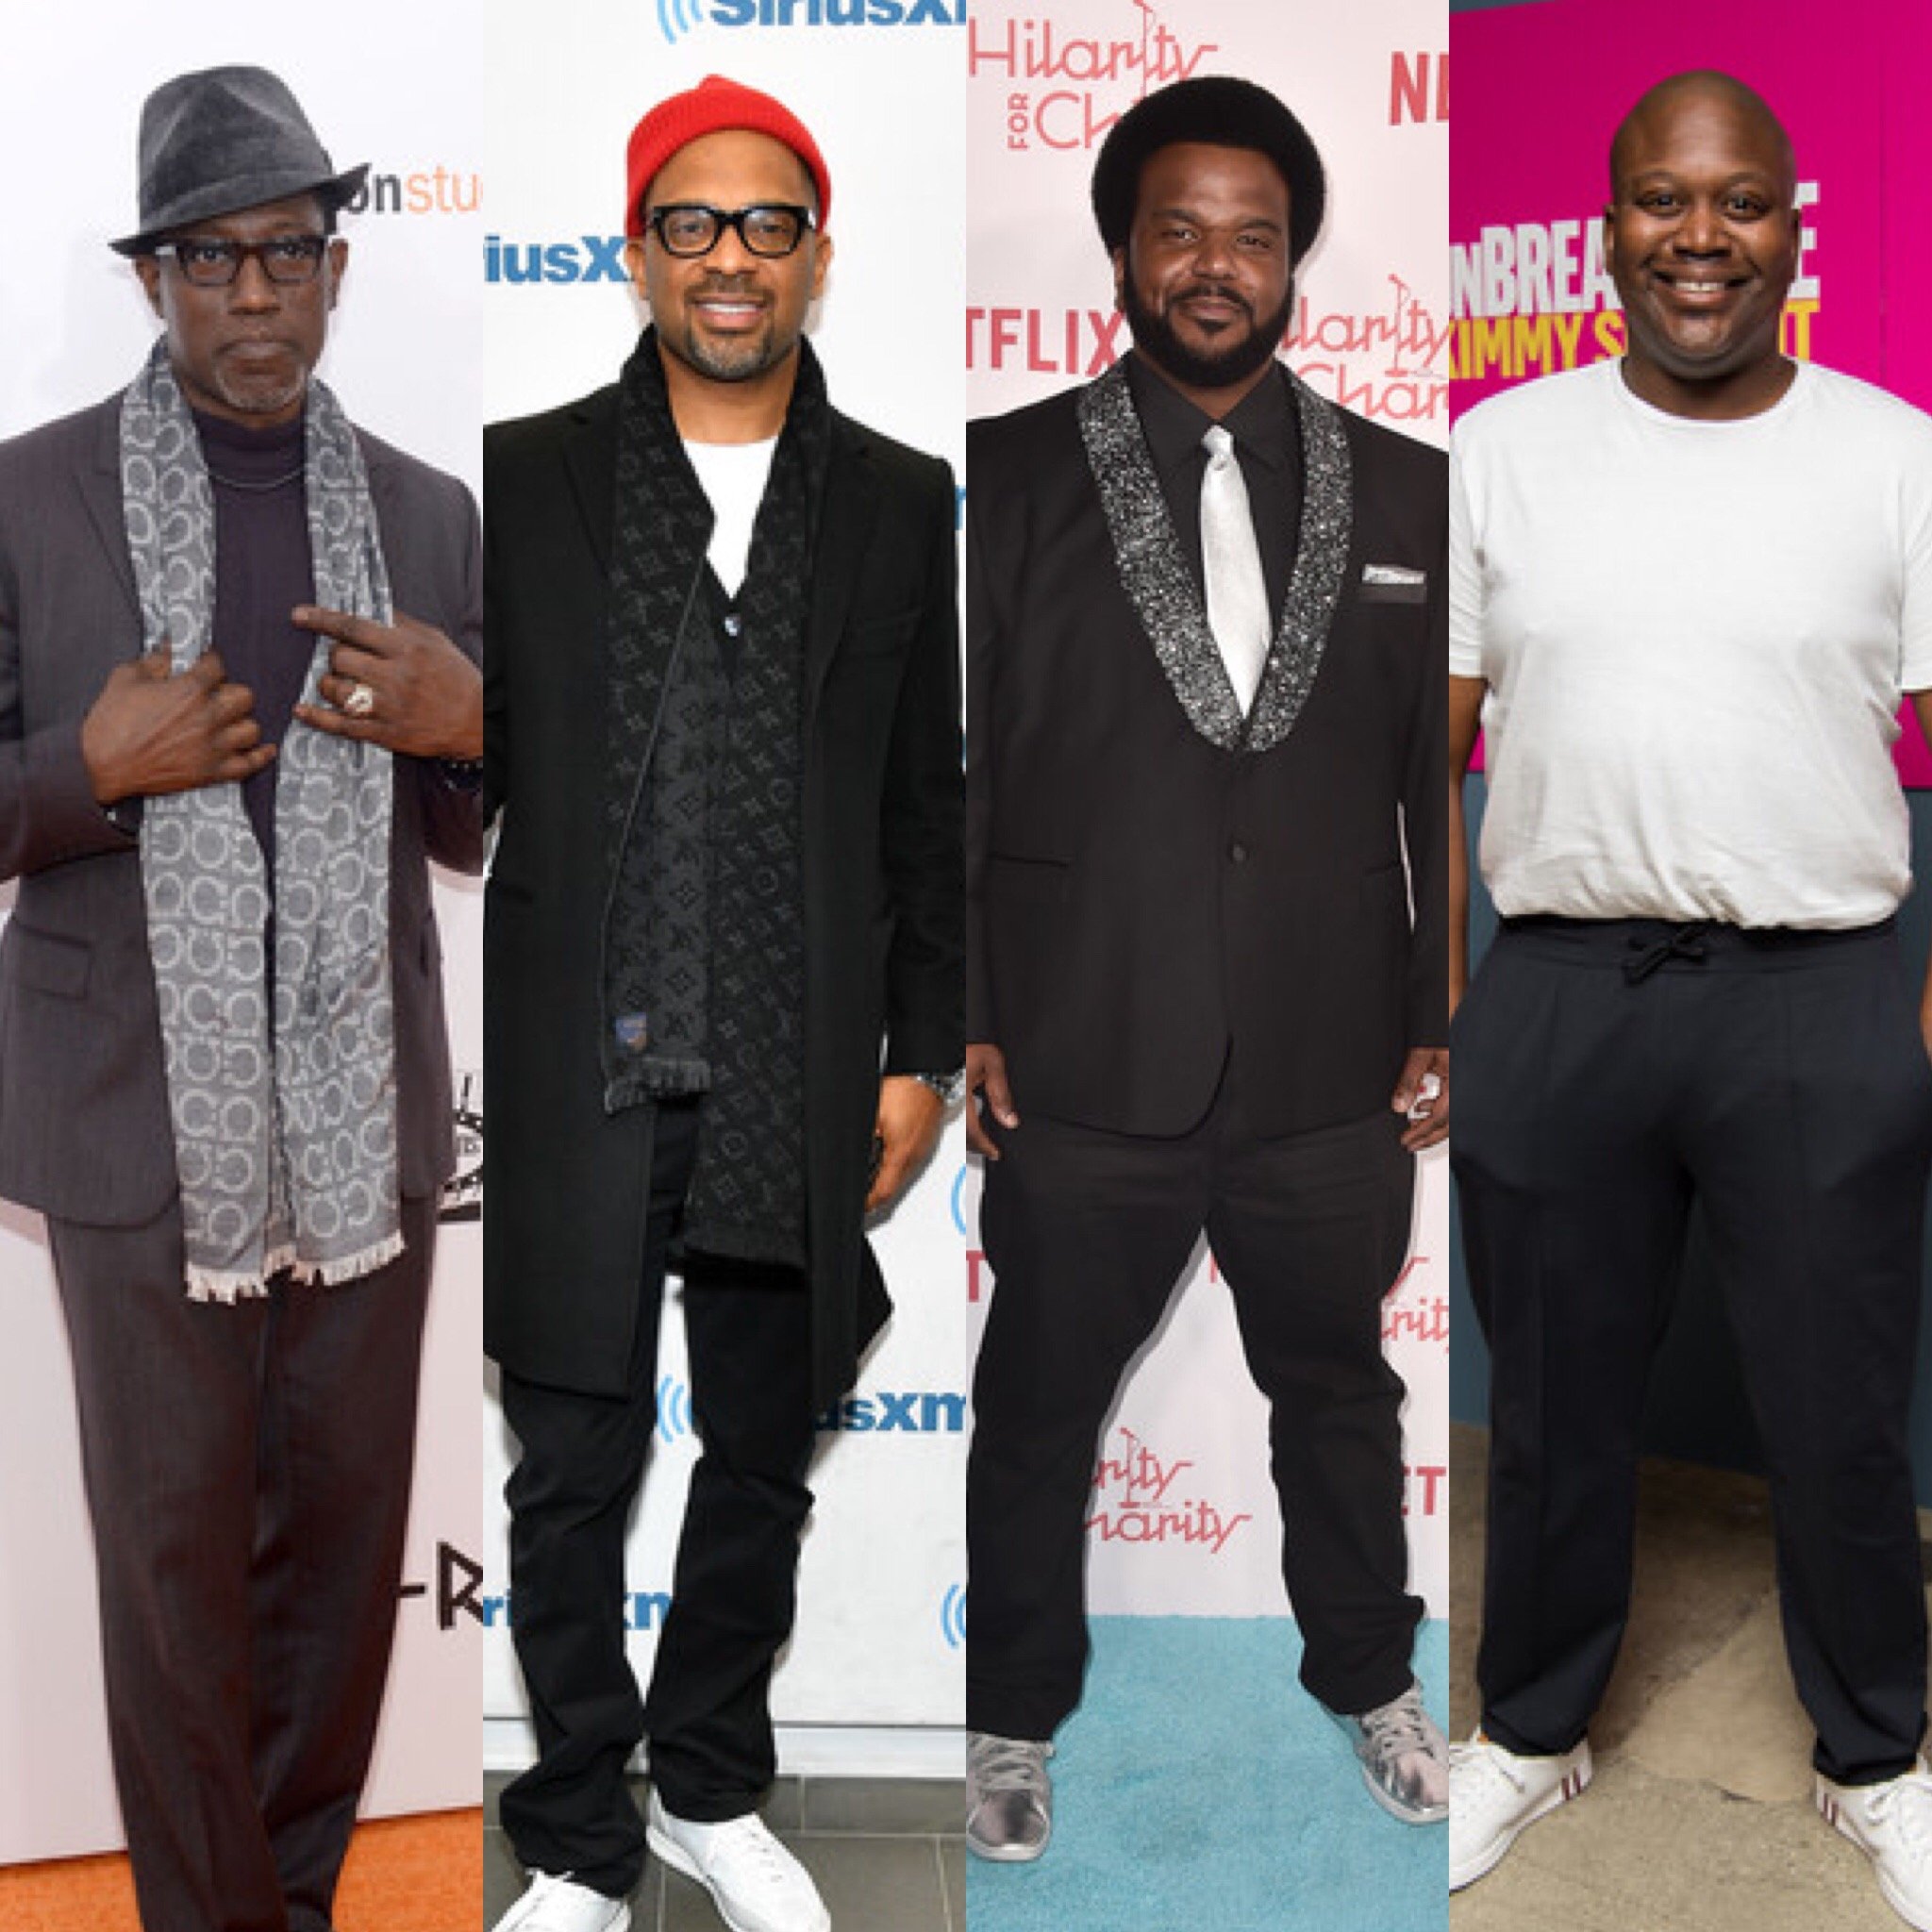 (L-R): Wesley Snipes, Mike Epps, Craig Robinson and Tituss Burgess (Getty Images)